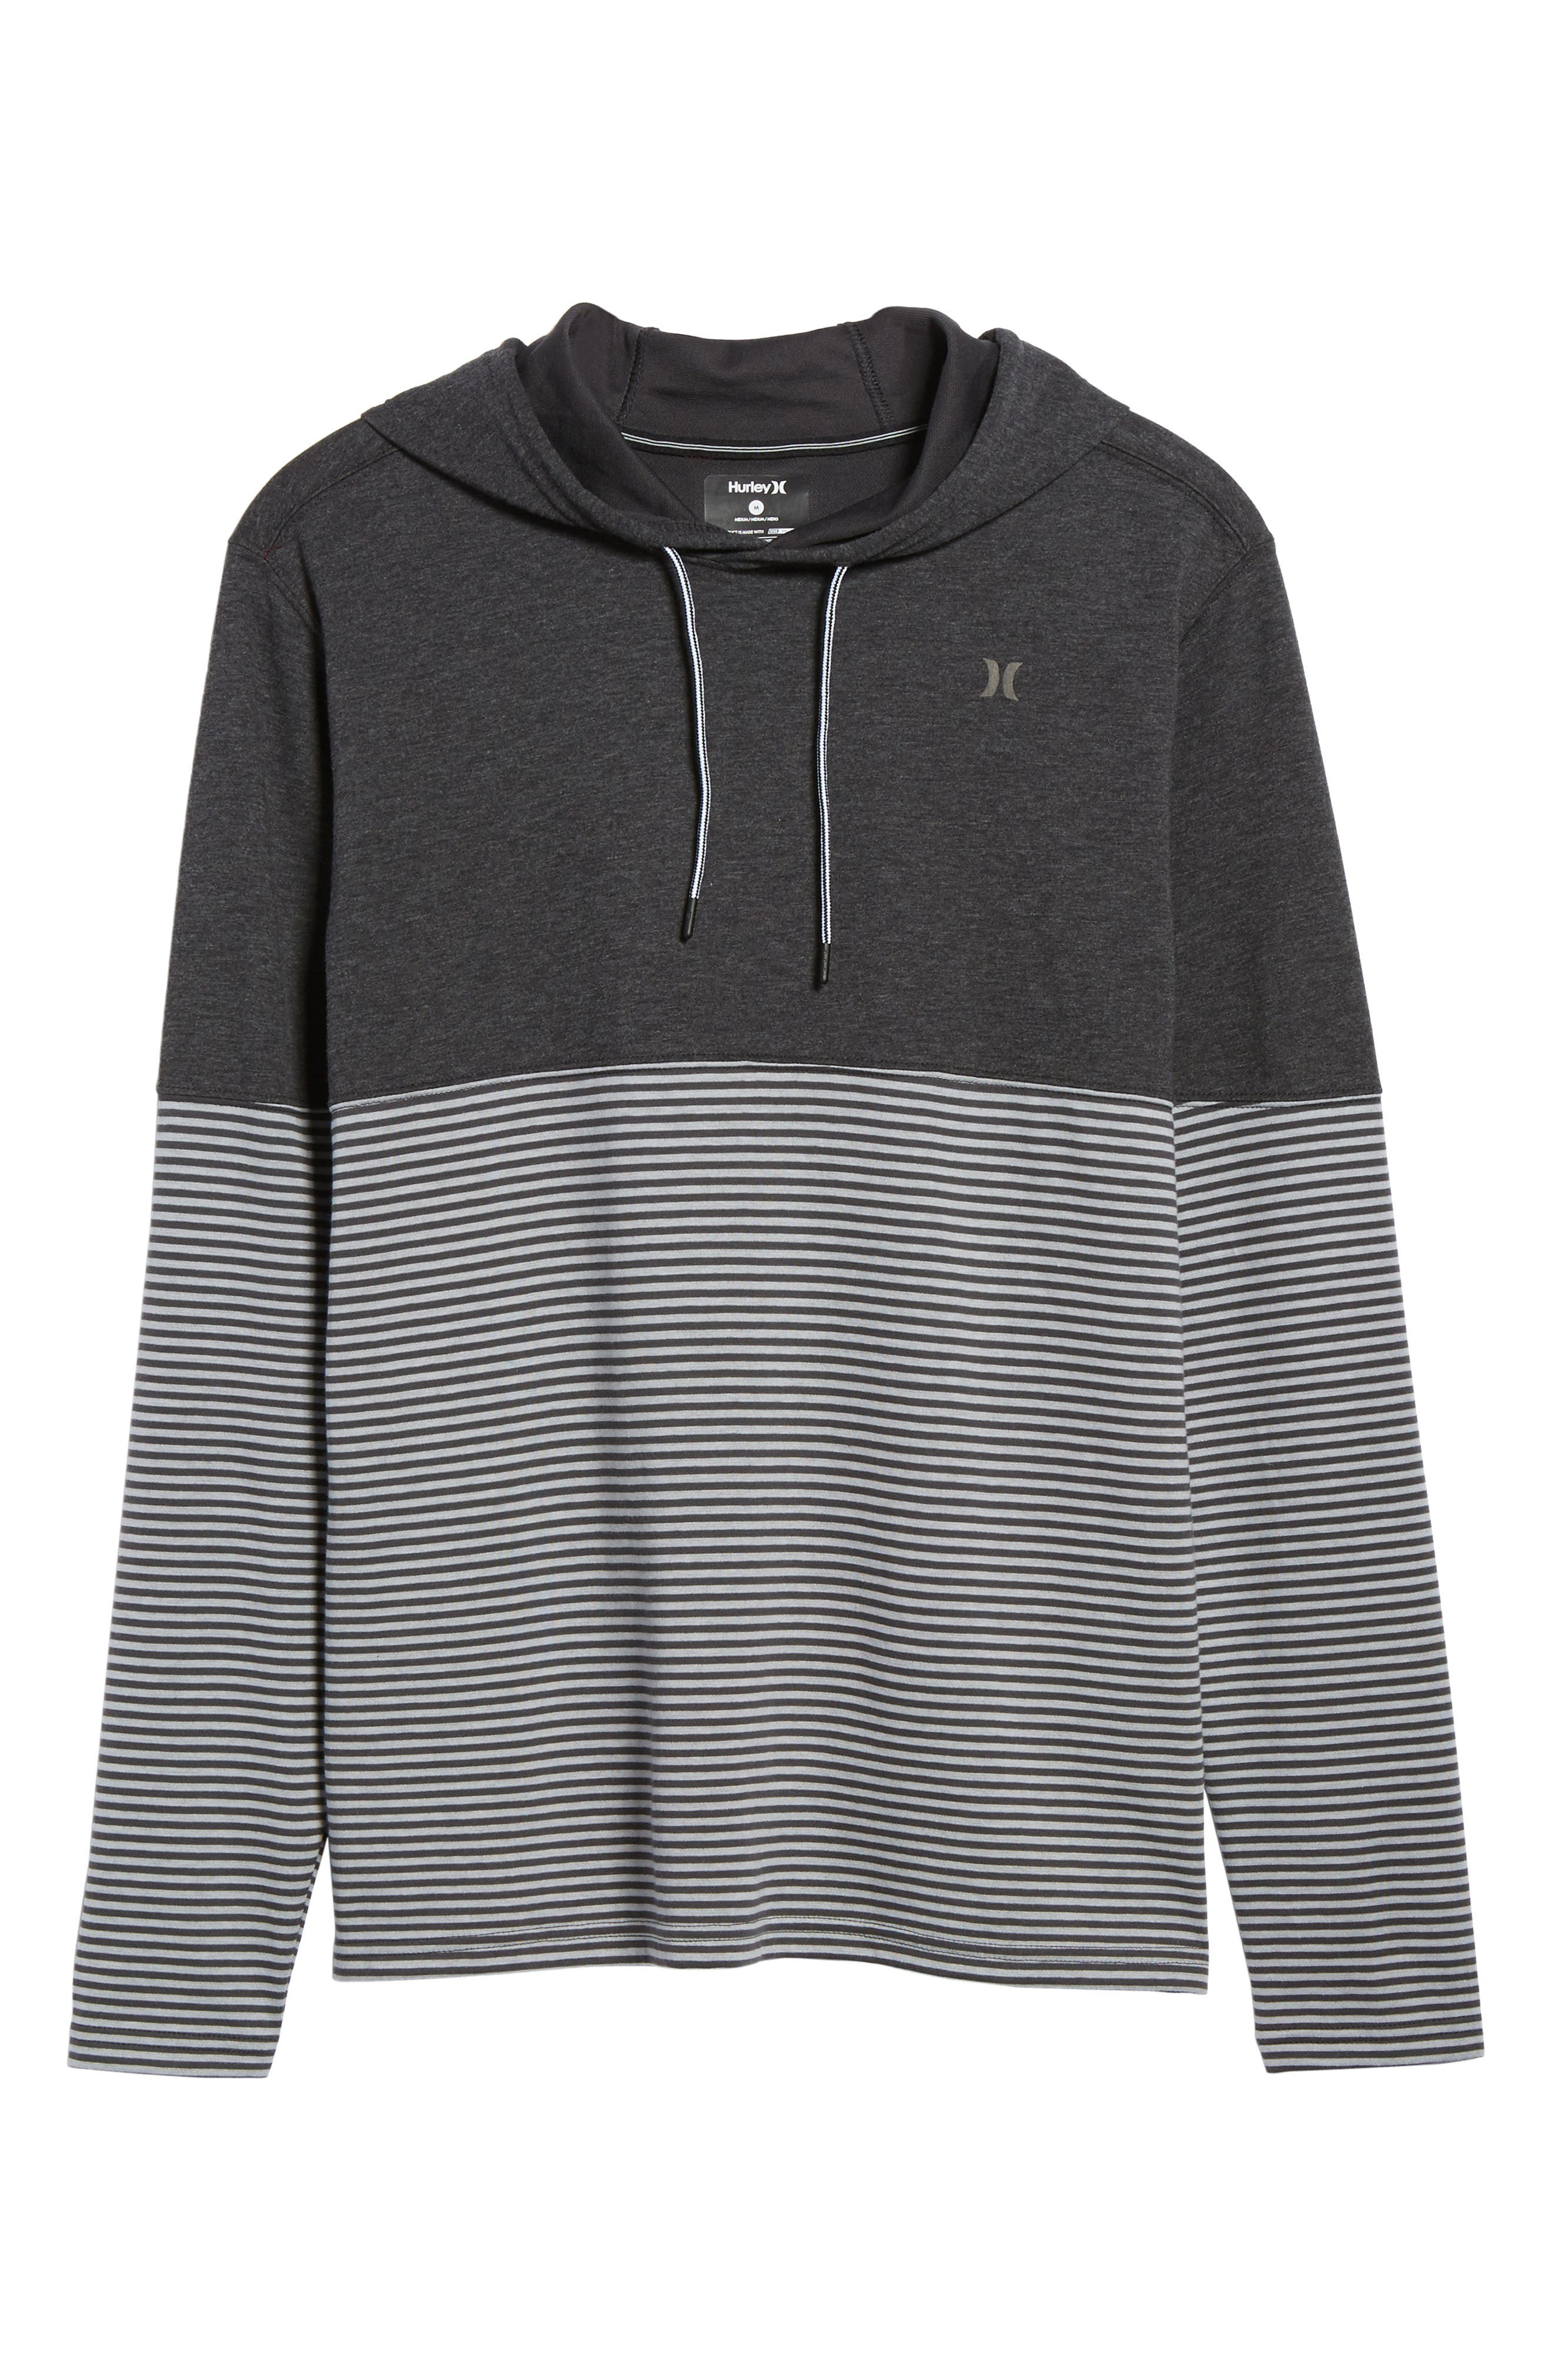 Recess Dry Hoodie,                         Main,                         color, Black Heather